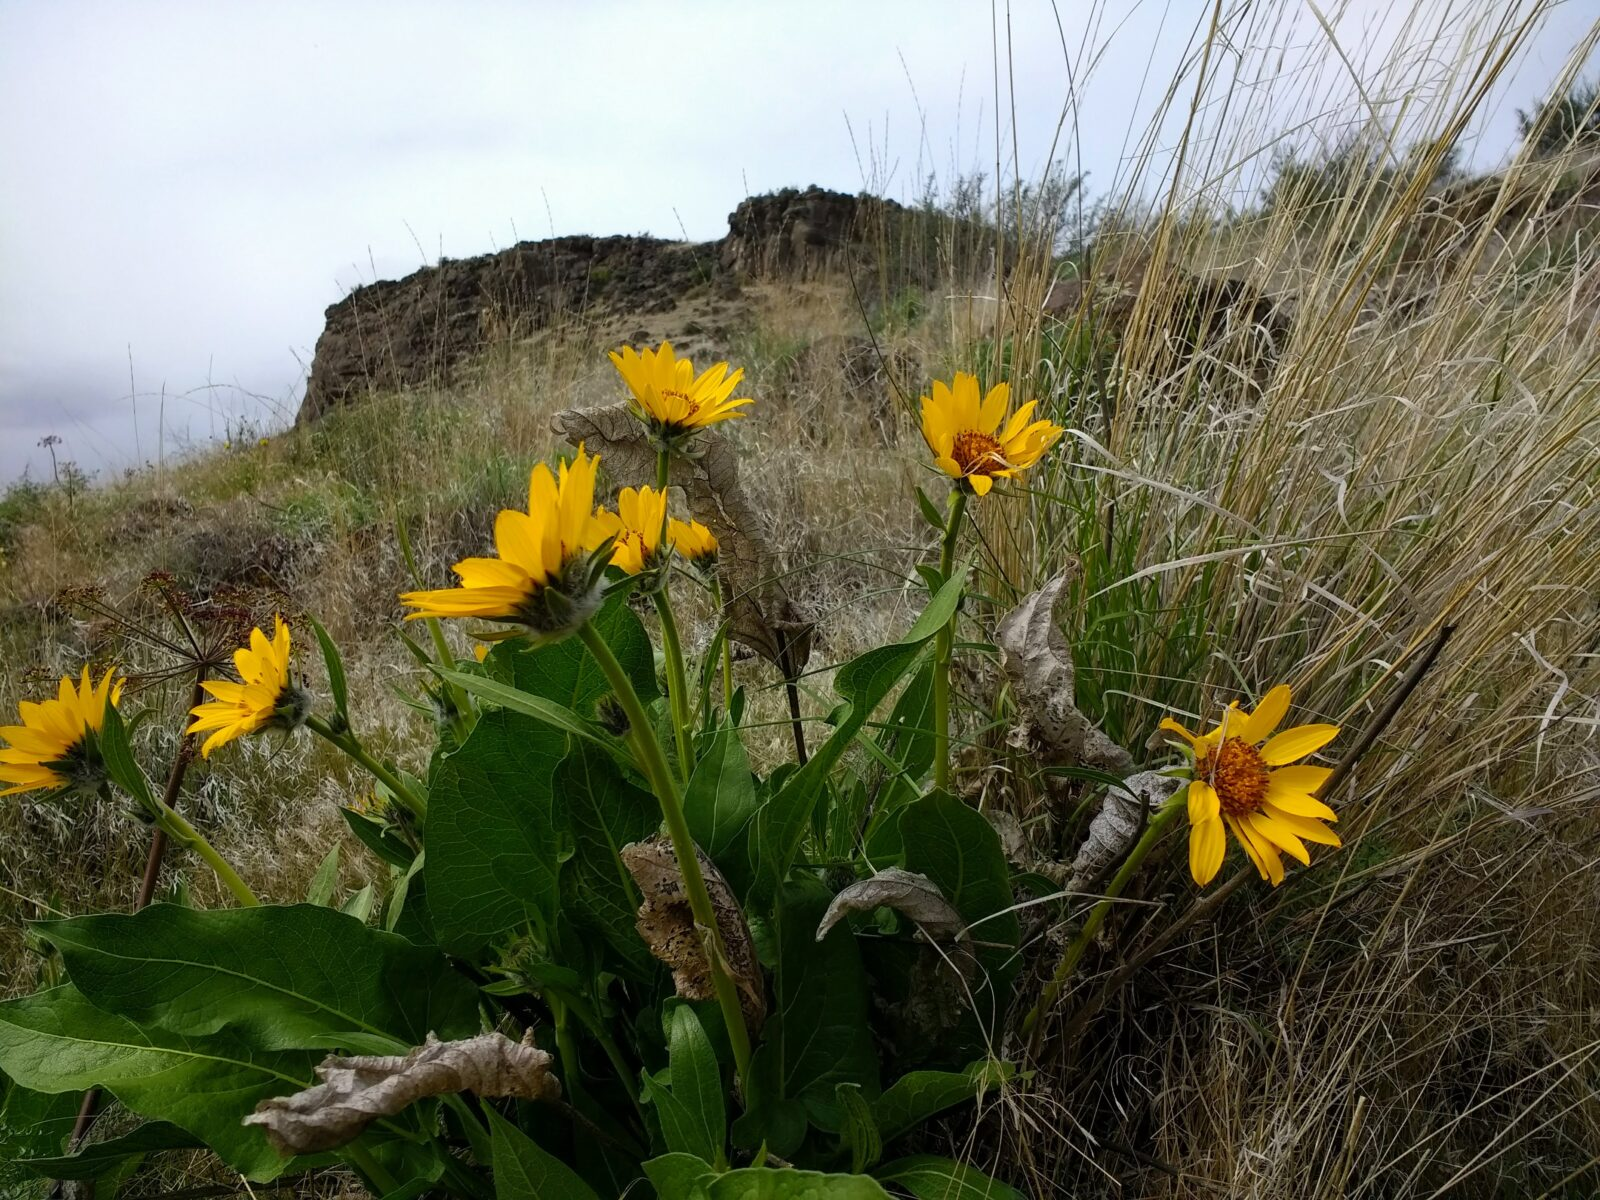 A perfect spring hike near seattle, Cowiche canyon is rocky and full of dry grass and bright yellow wildflowers